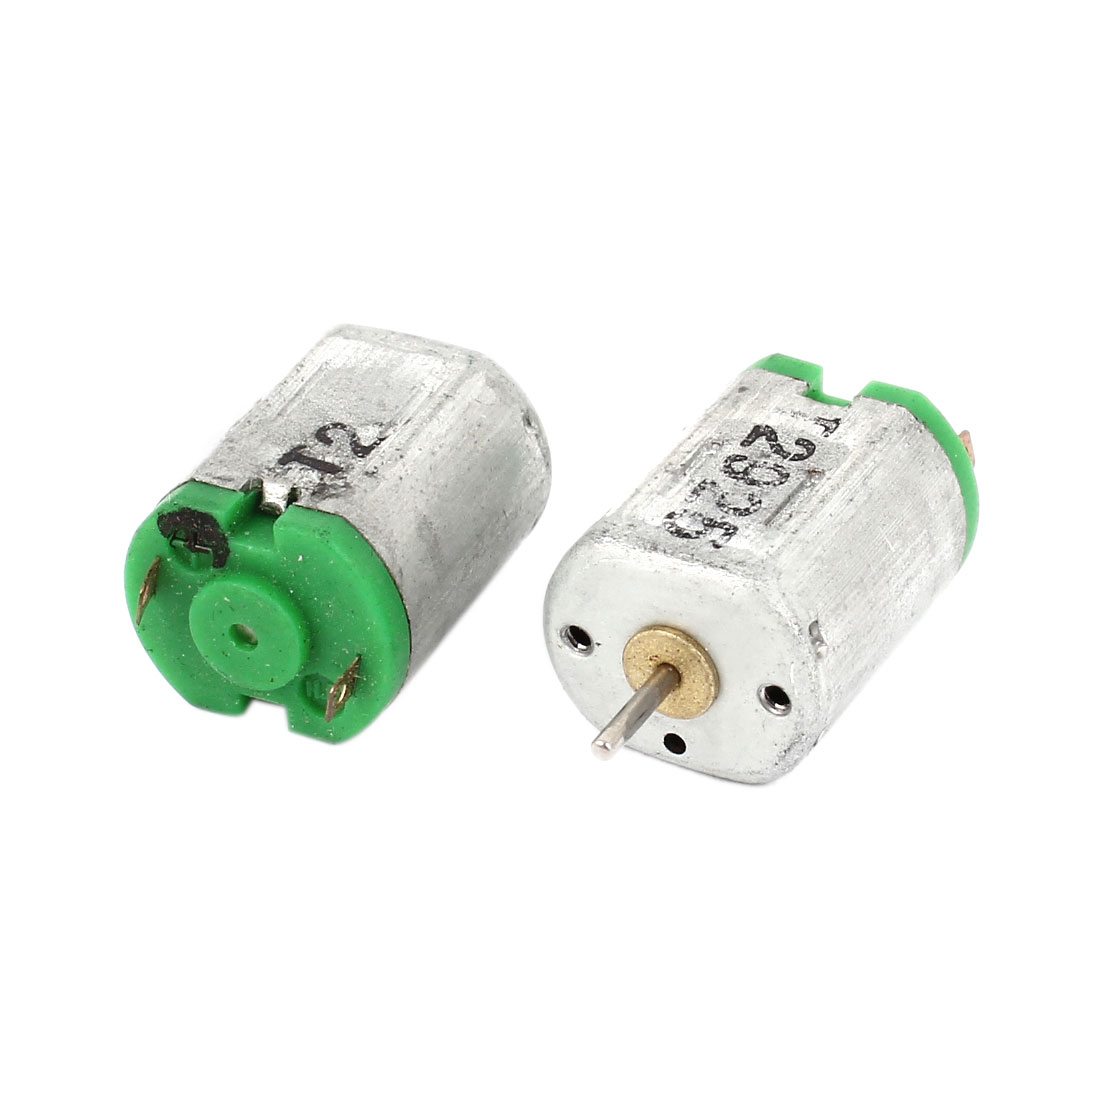 2pcs 1mm Shaft High Torque Electric Motor DC 1.5V-6V 26500RPM